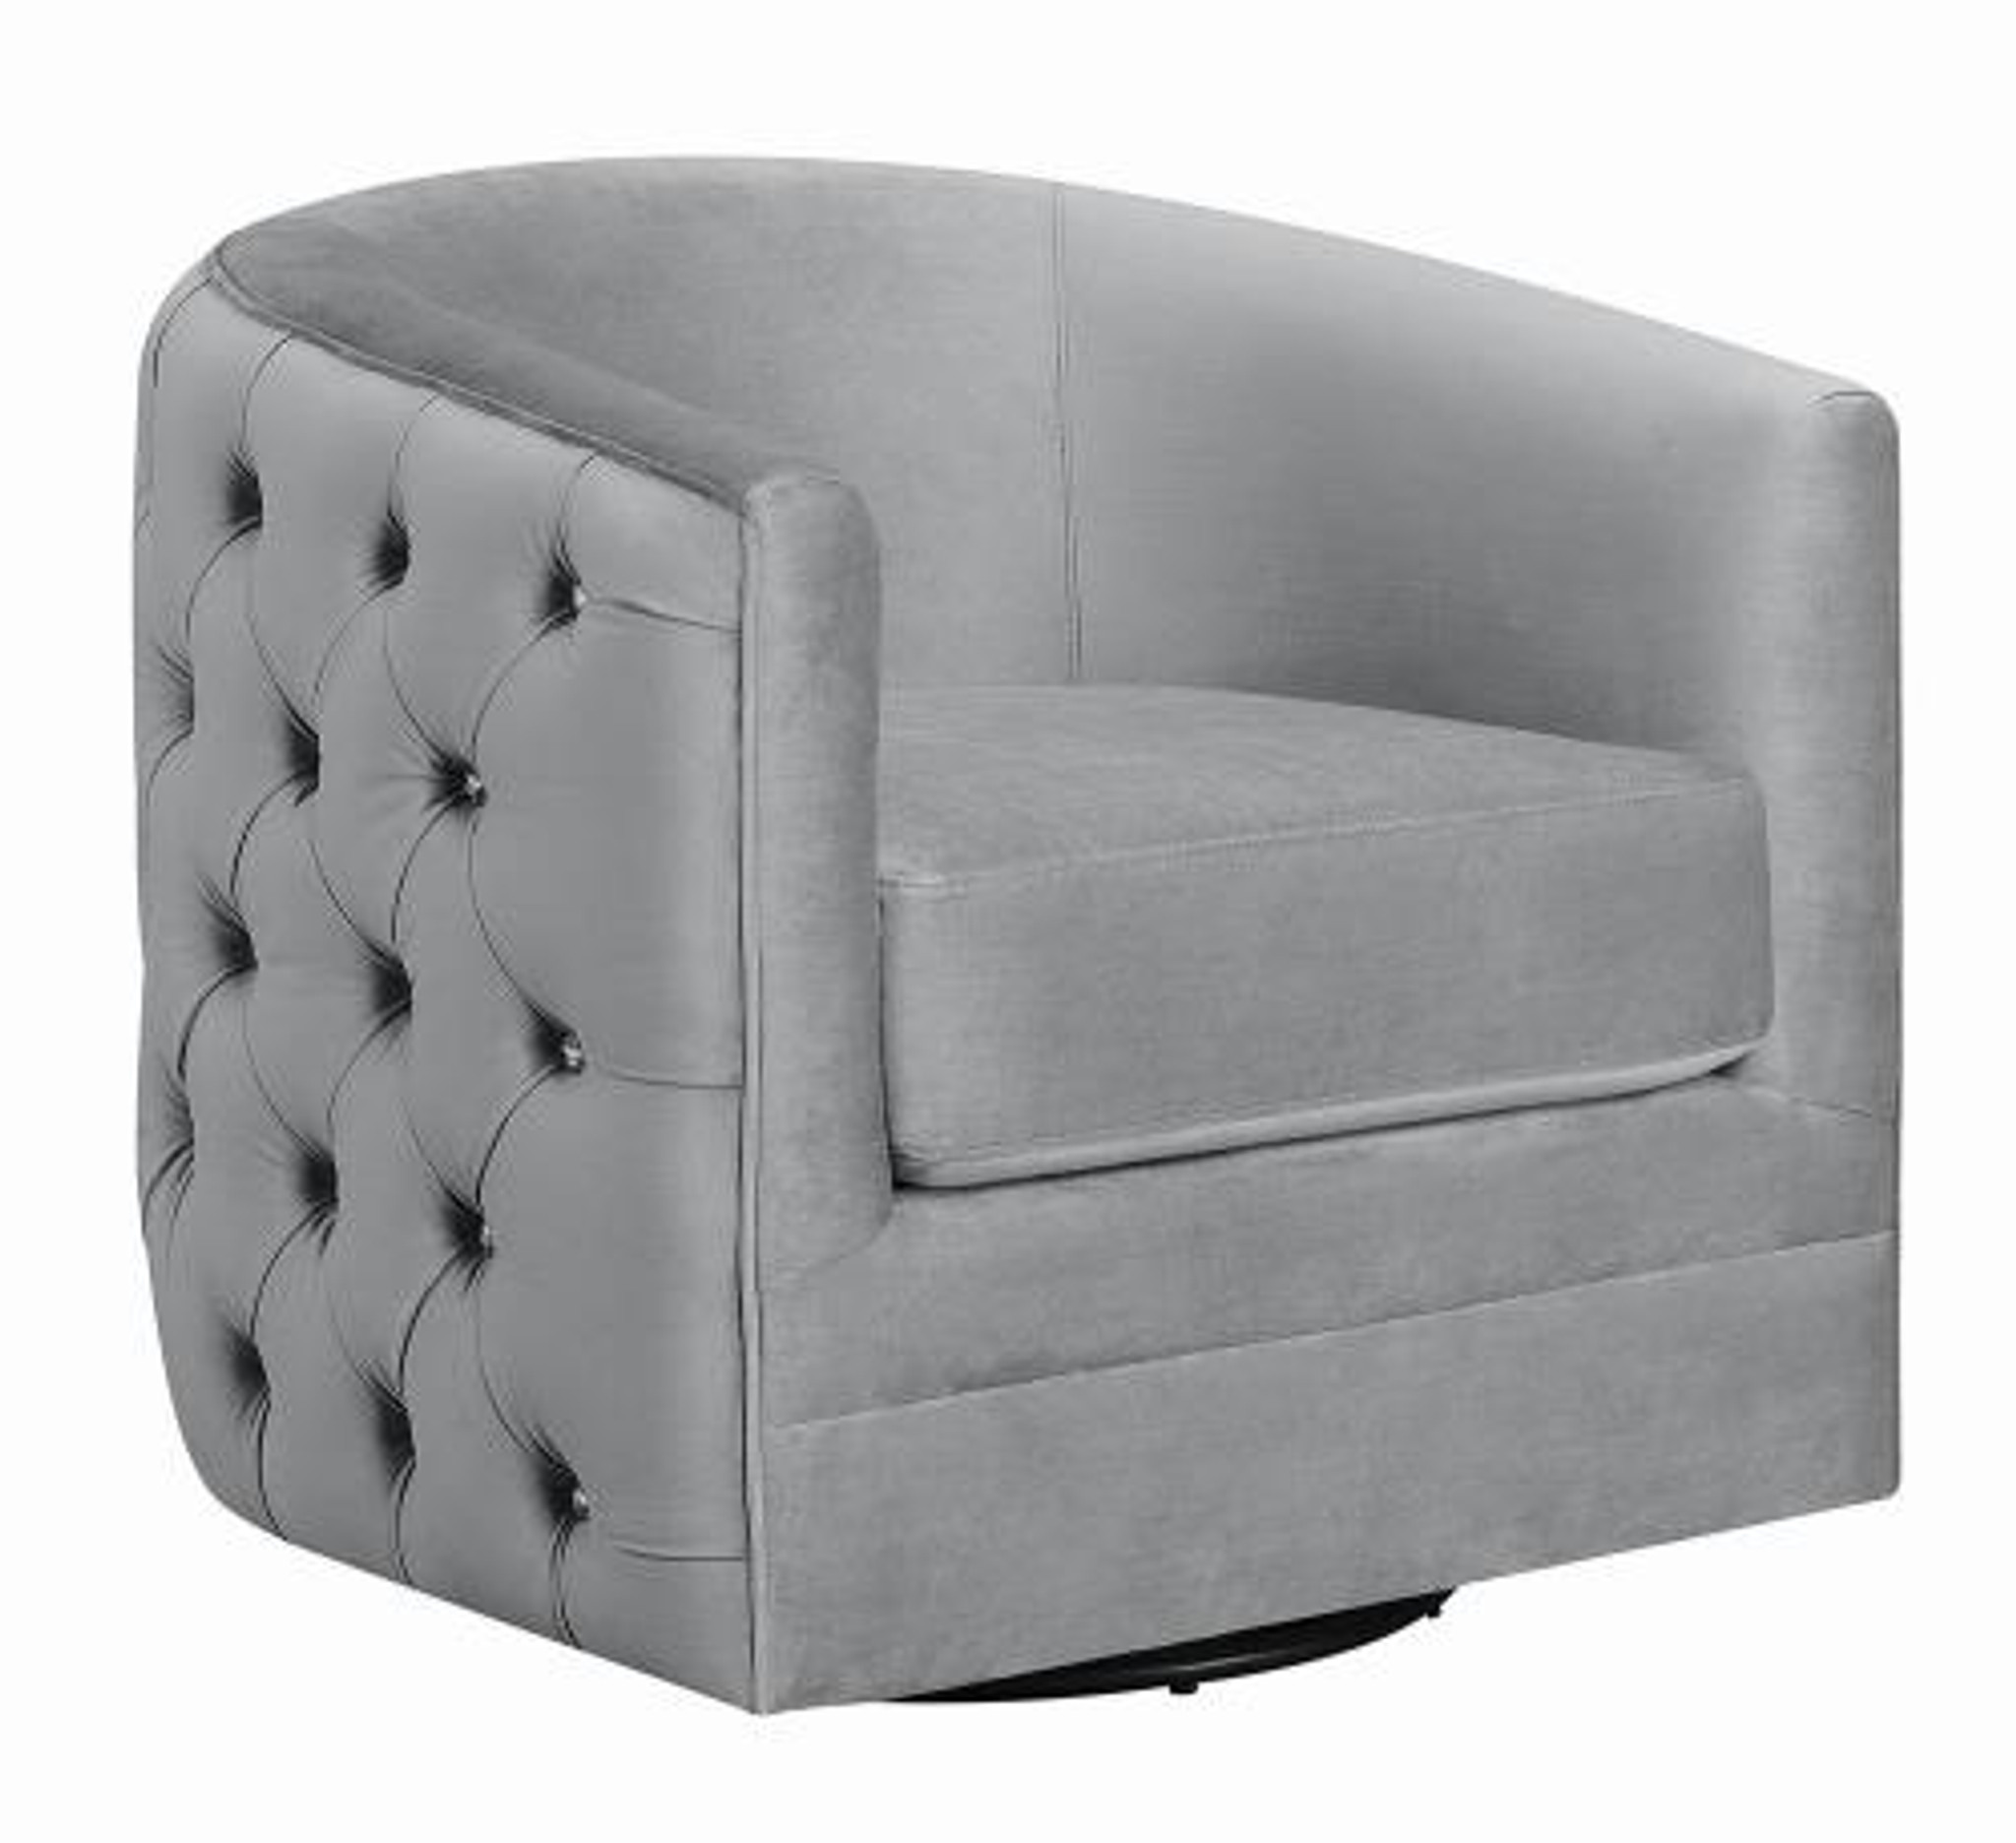 Admirable Velvet Gray Accent Chair With Rhinestone Buttons Caraccident5 Cool Chair Designs And Ideas Caraccident5Info